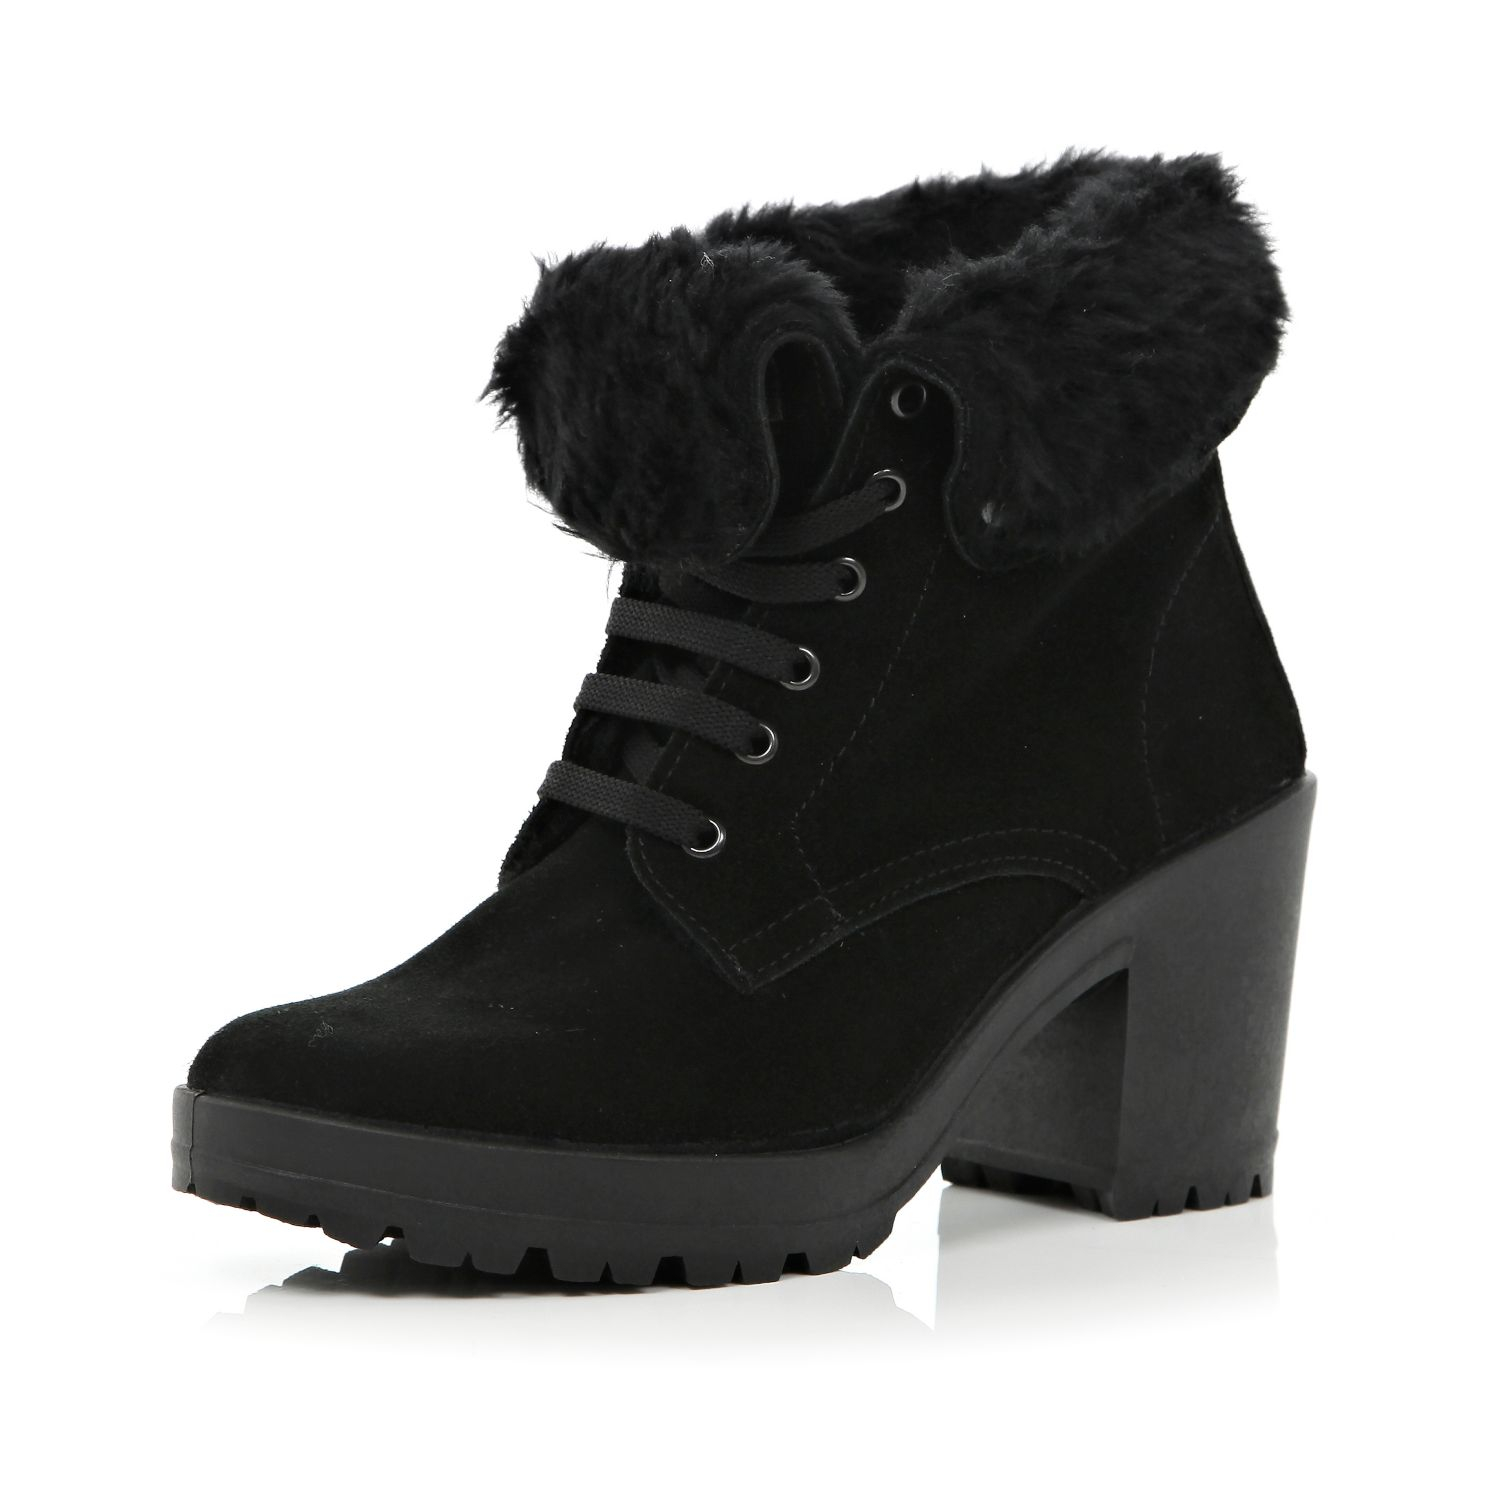 Fur lined boots trap air in the fabric and keeps our feet warm, despite freezing temperatures. The fur lining also means a snug fit and maximum comfort. And with brands like Emu and Roxy, you can find a vast range of fur lined boots that are as stylish on the outside as they are cosy on the inside.